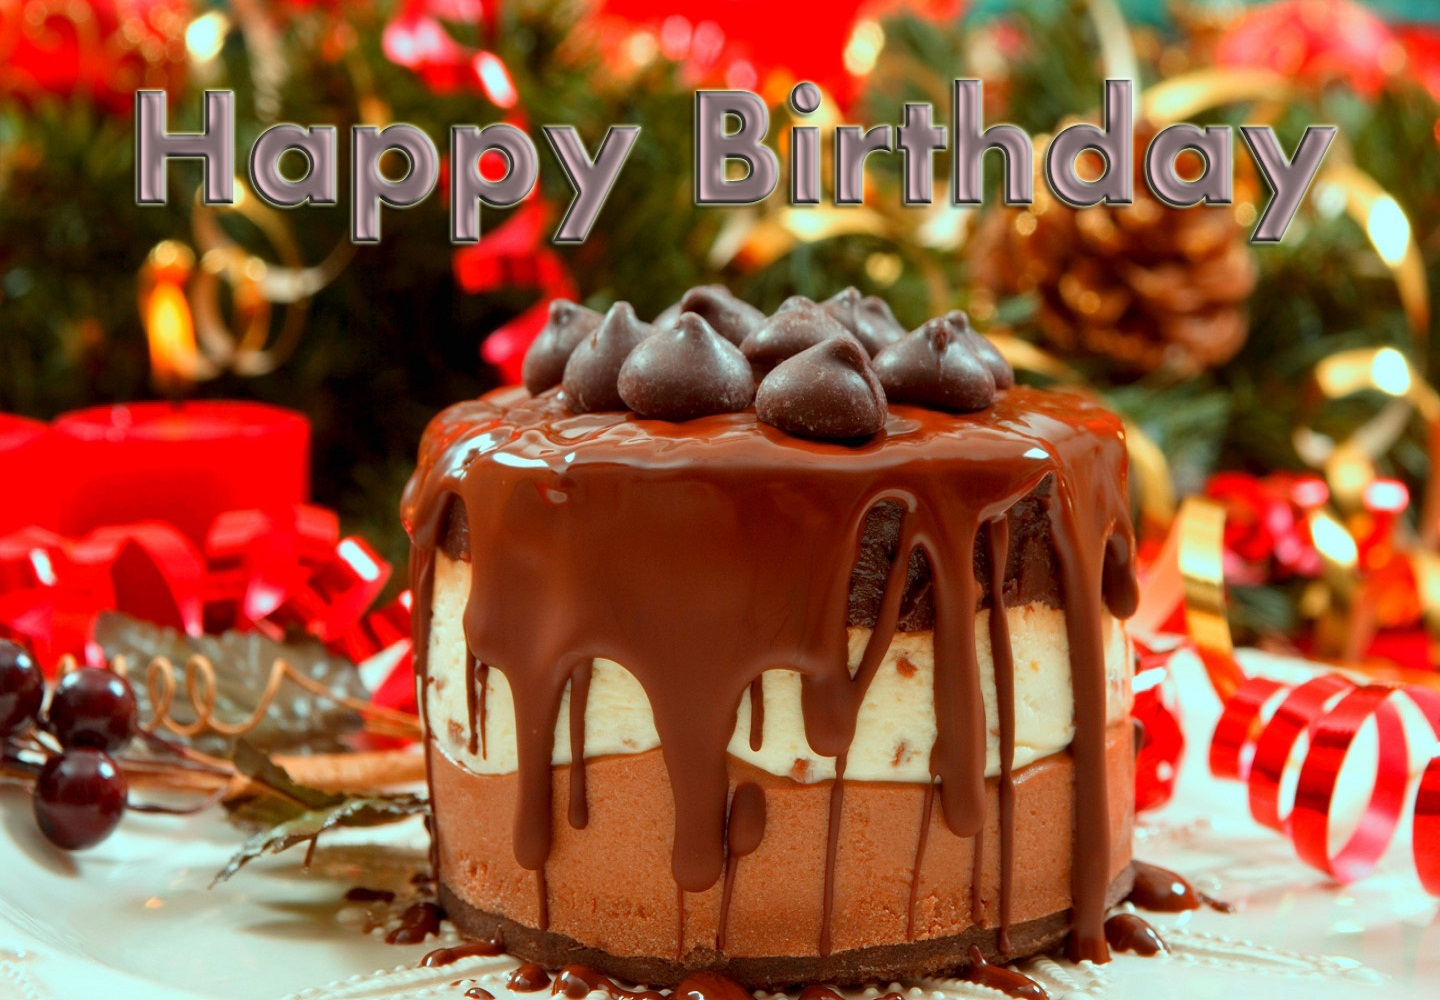 beautiful birthday images download ; happy-birthday-cake-beautiful-hd-pictures